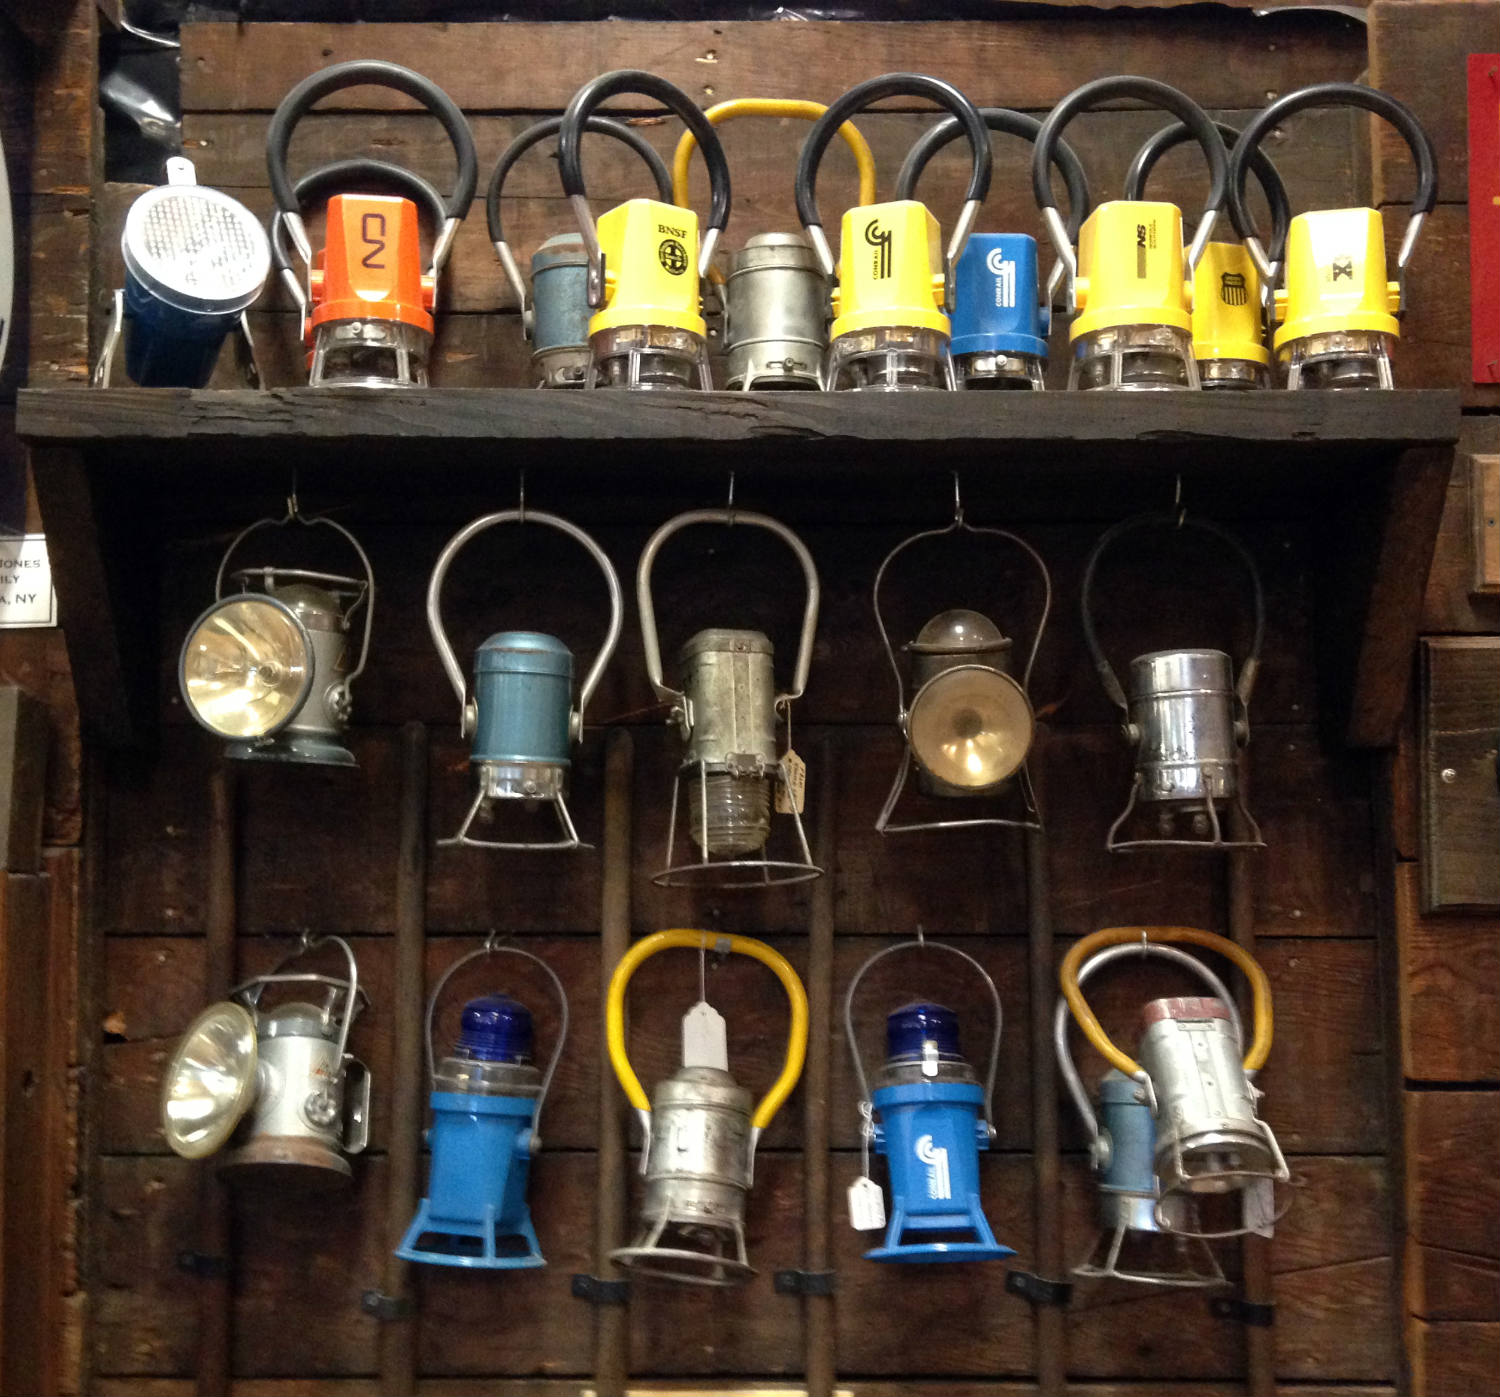 Lantern Collection at Medina Railroad Museum in Medina, NY